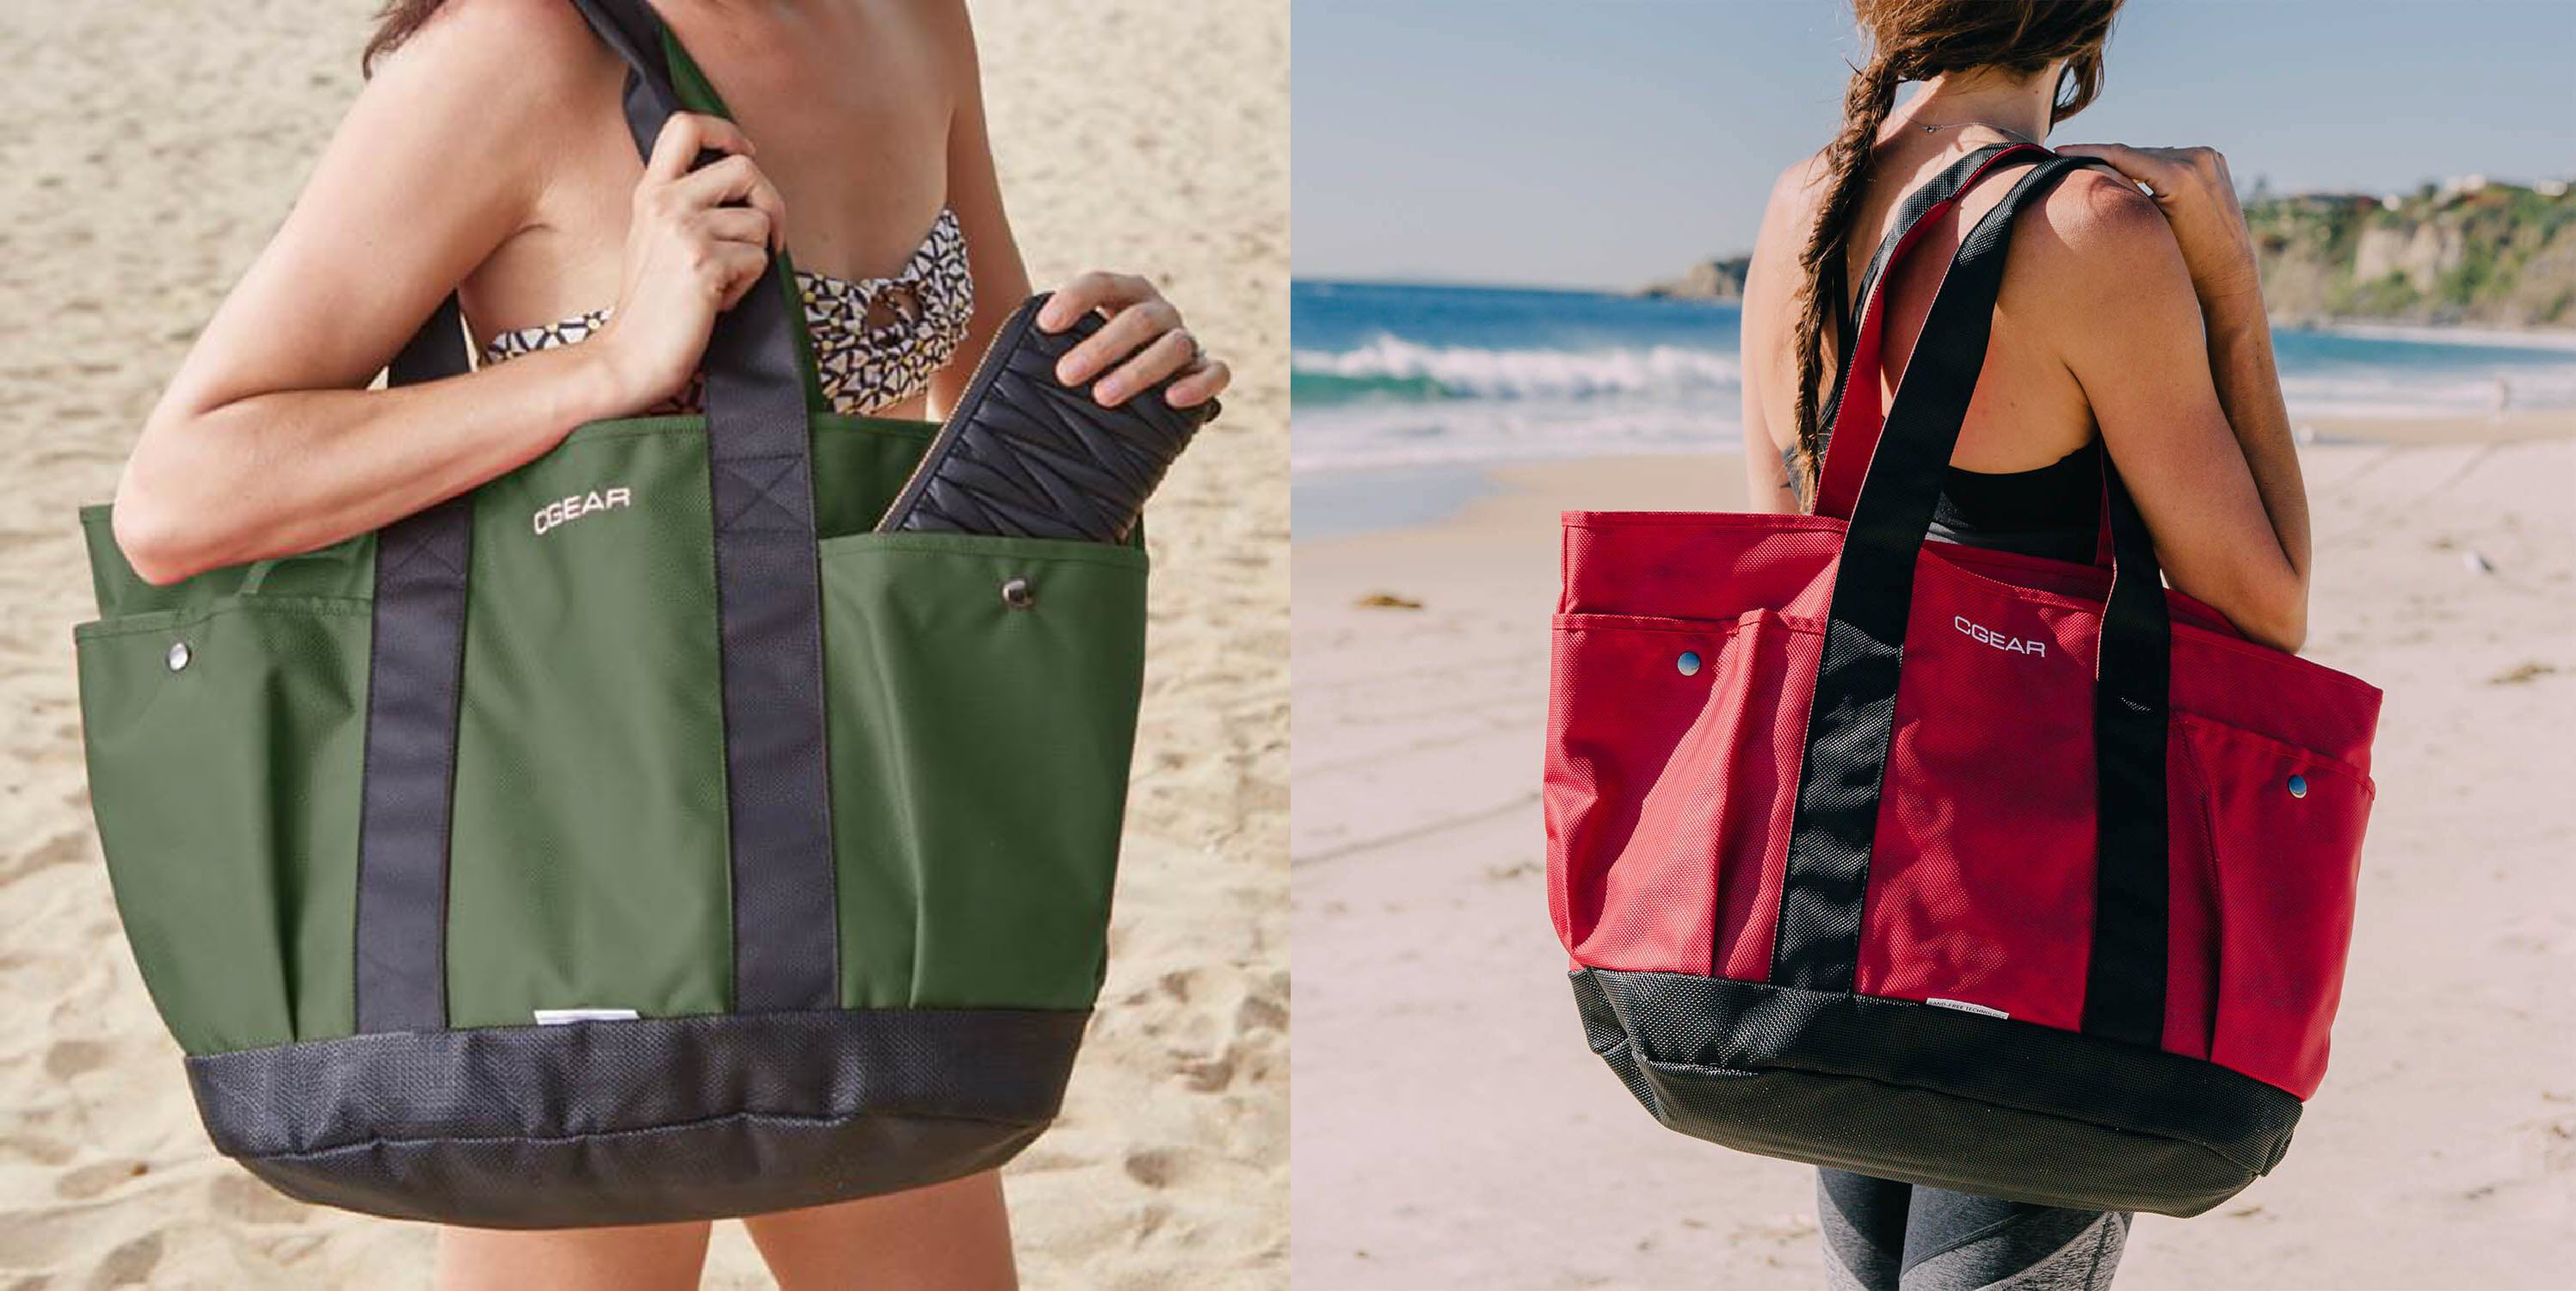 New Products Shopping Guide Sand-Free Tote